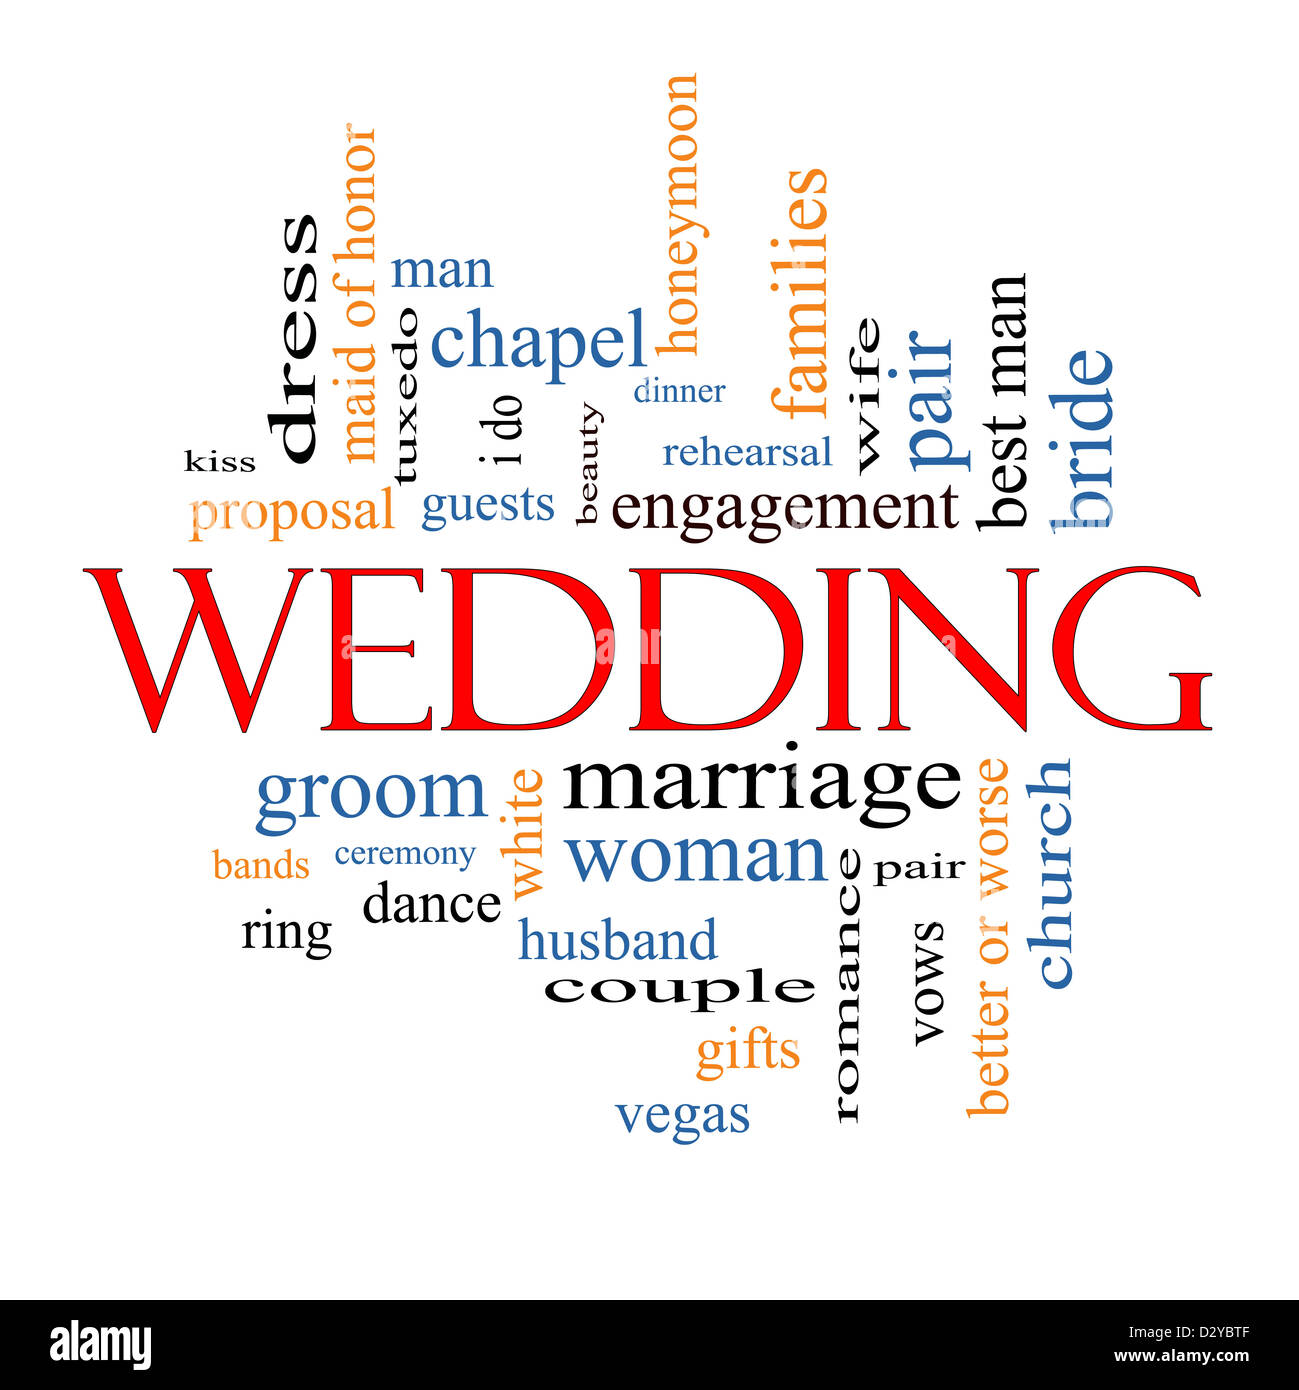 wedding word cloud concept with great terms such as dress guests